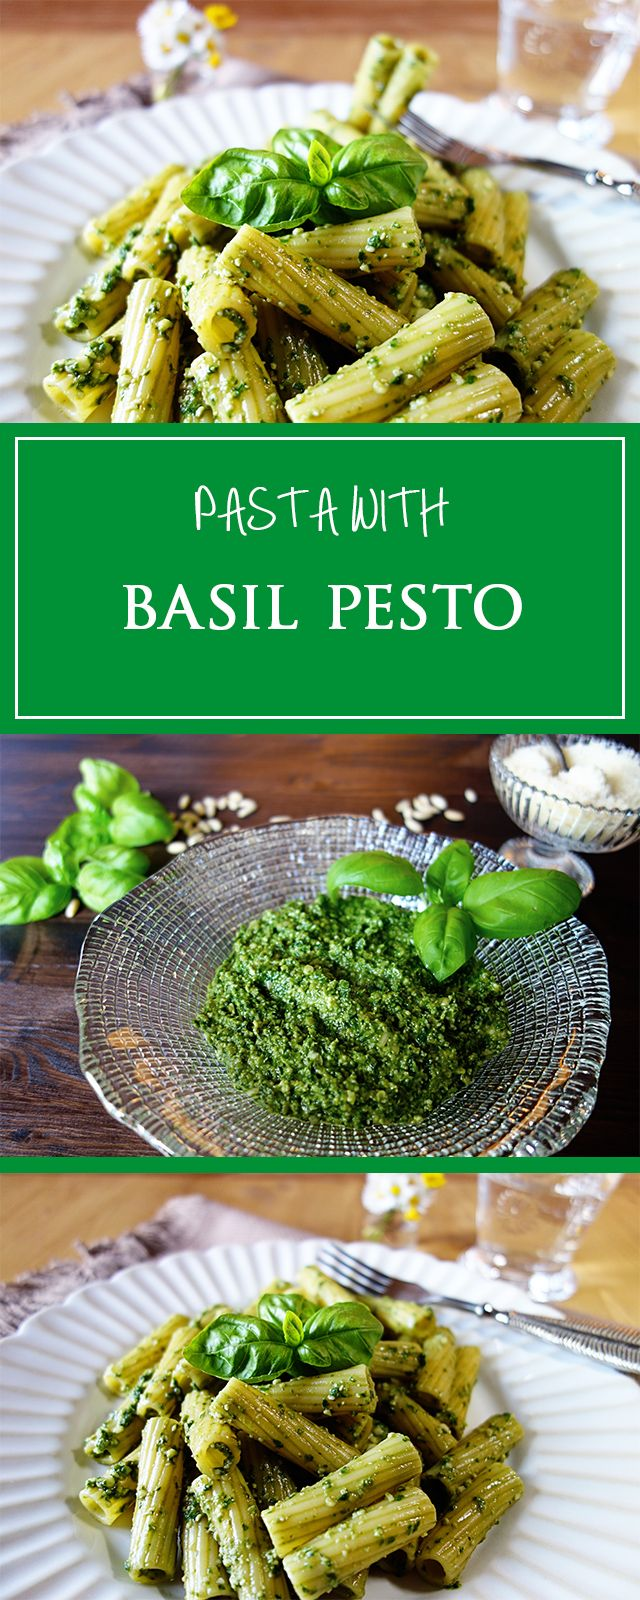 Pasta with basil pesto - a simple & quick recipe for a delicious pesto! Gluten-free, vegetarian & tastes like summer in Italy 🌞❤️ | cucina-con-amore.com